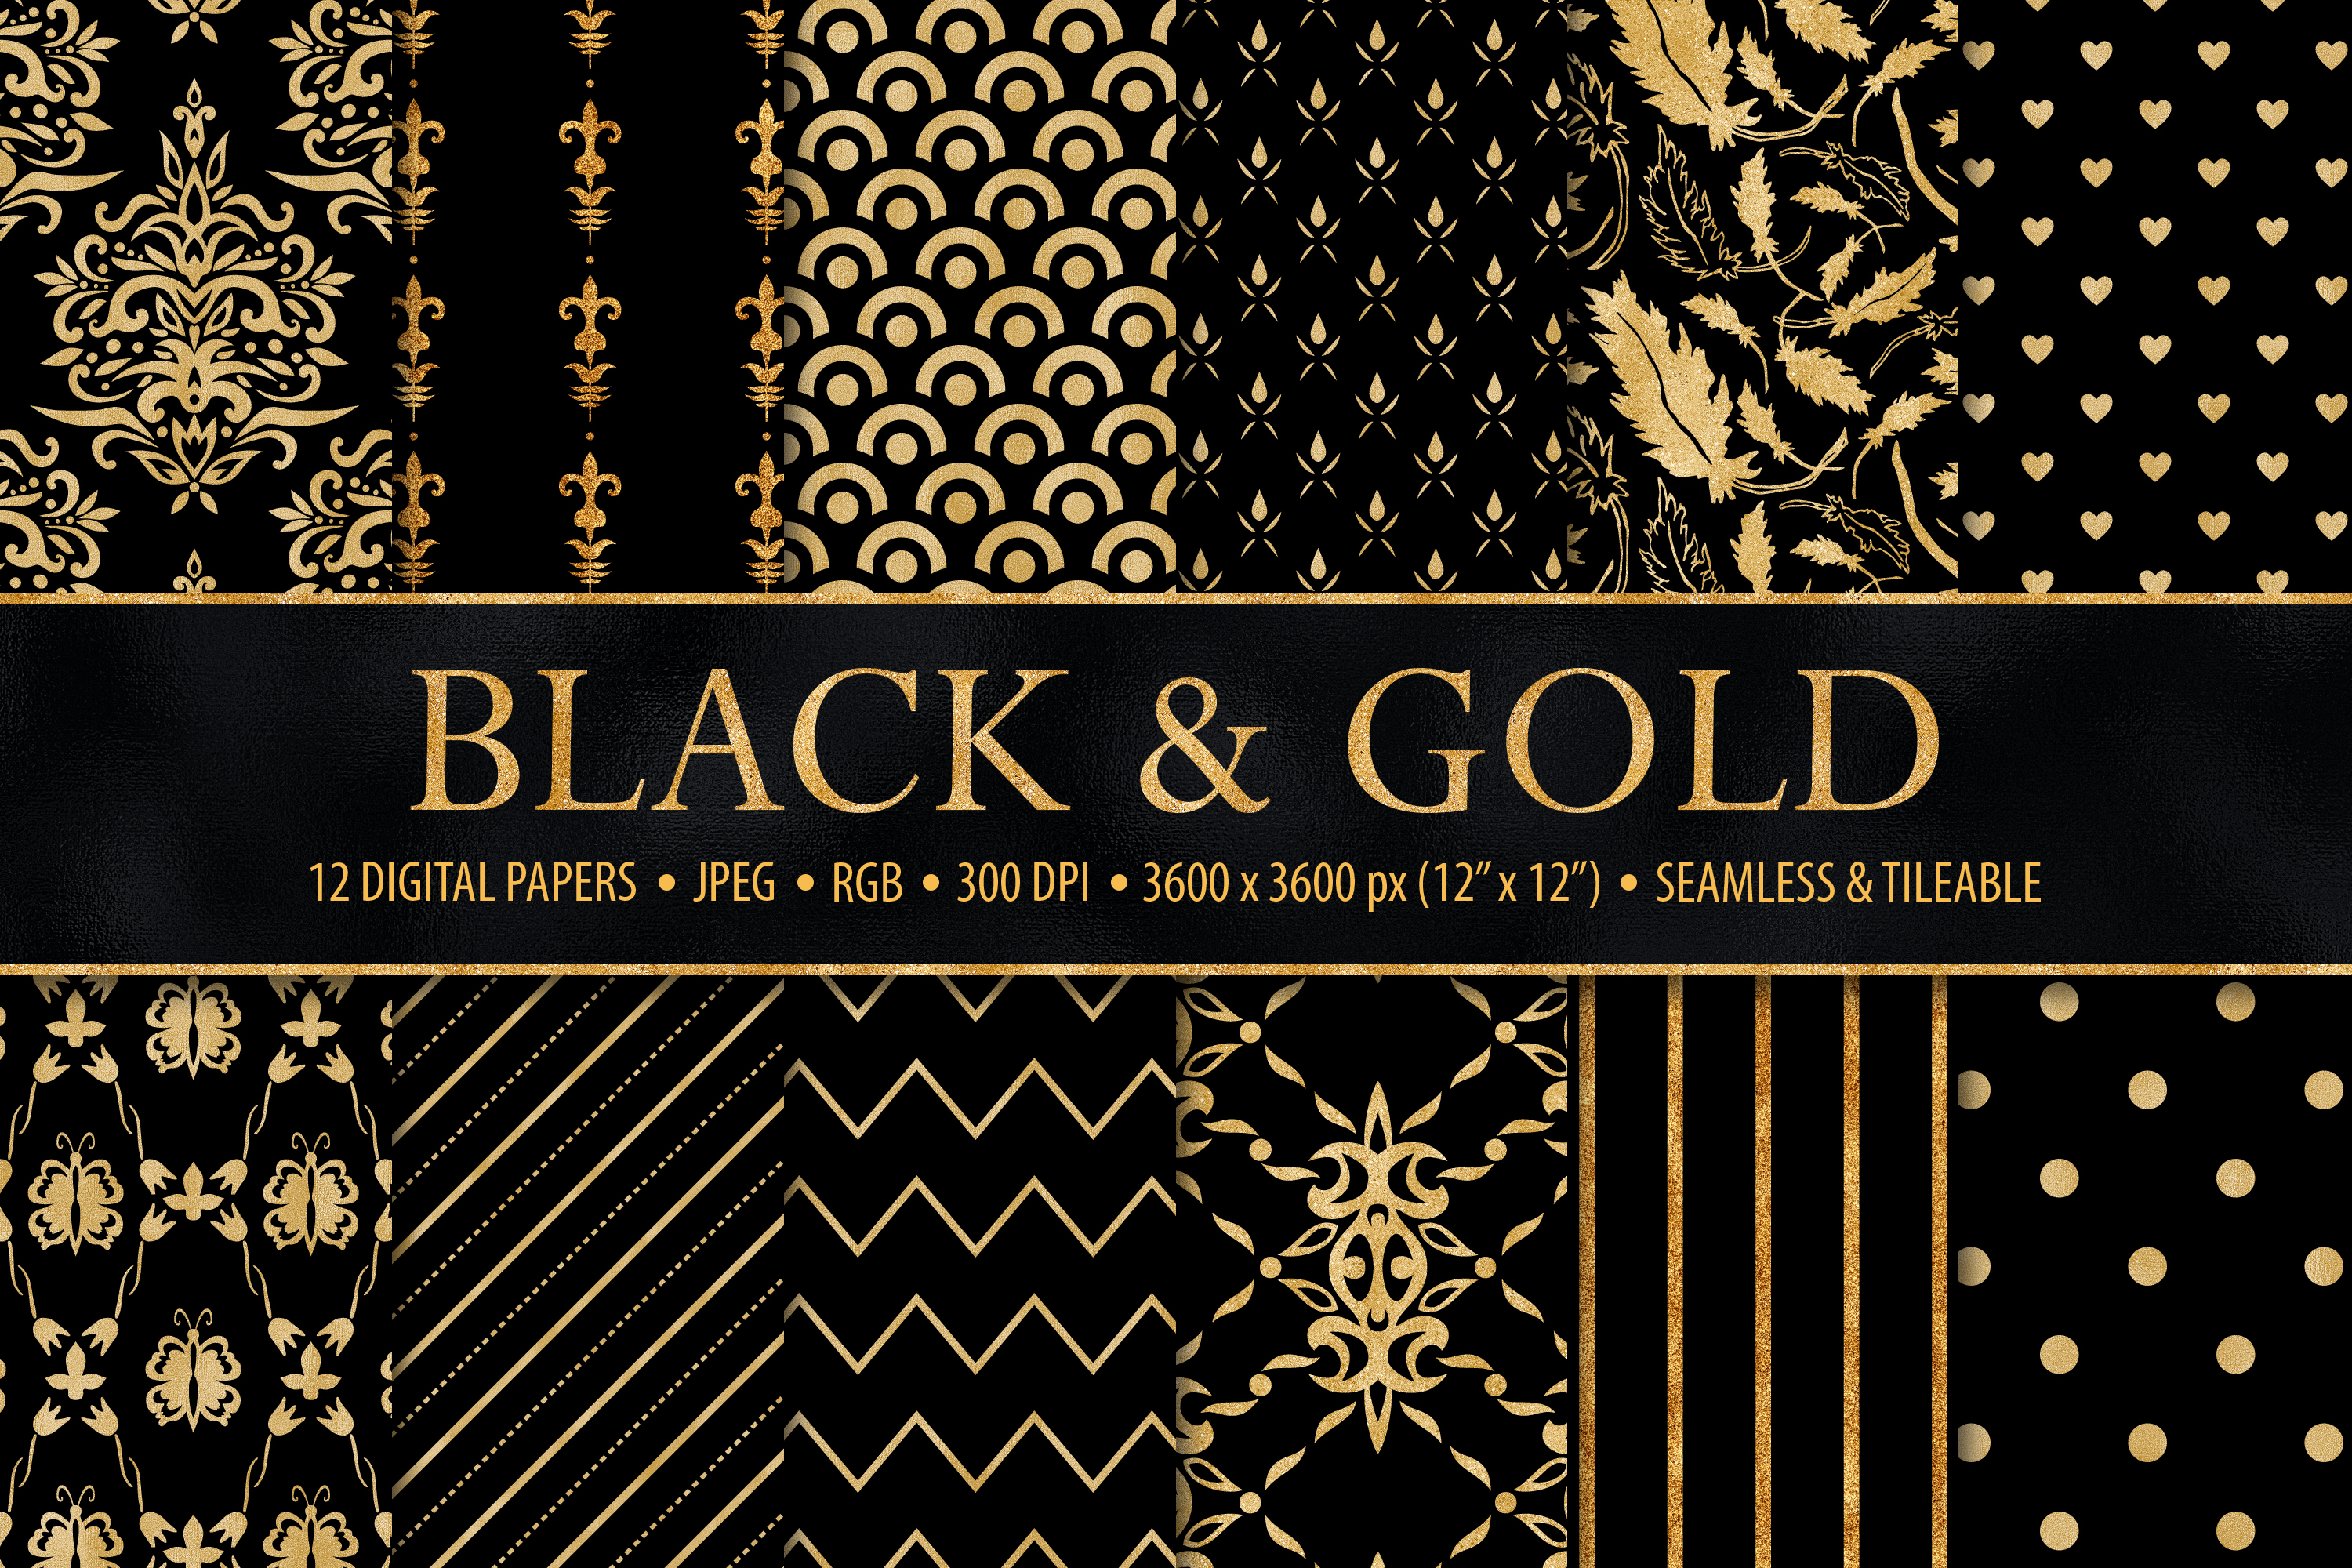 Black and Gold Seamless Papers - Damask & Geometric Patterns example image 1